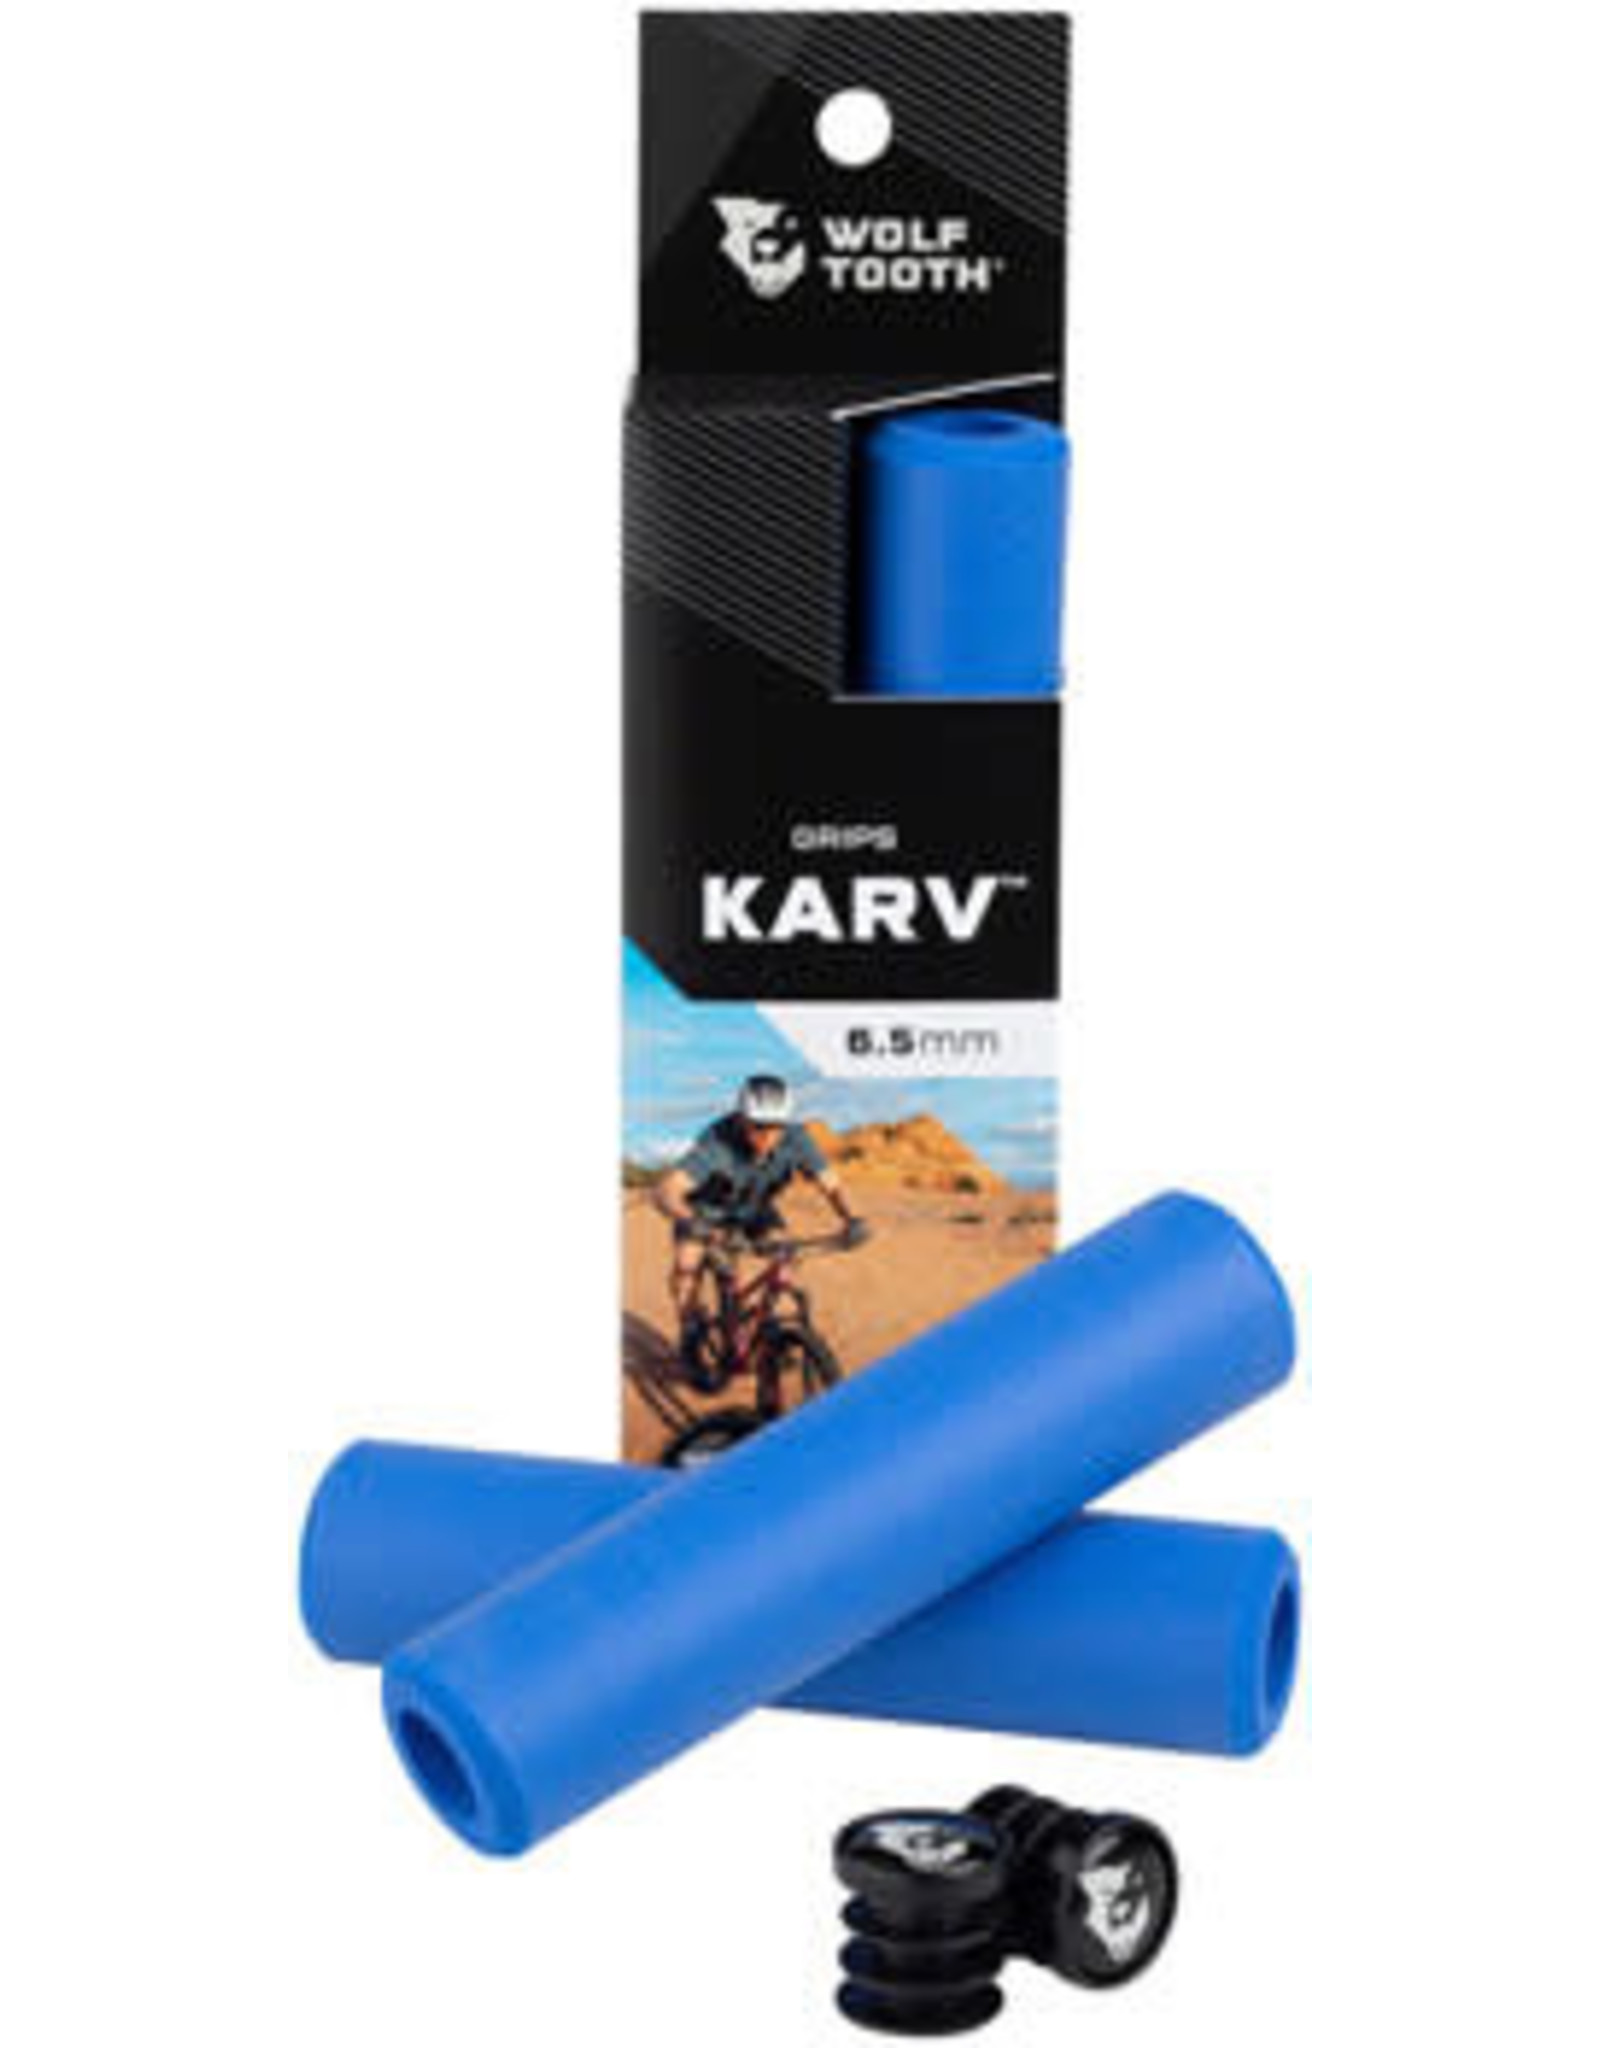 Wolf Tooth Components Wolf Tooth Karv Grips - Blue